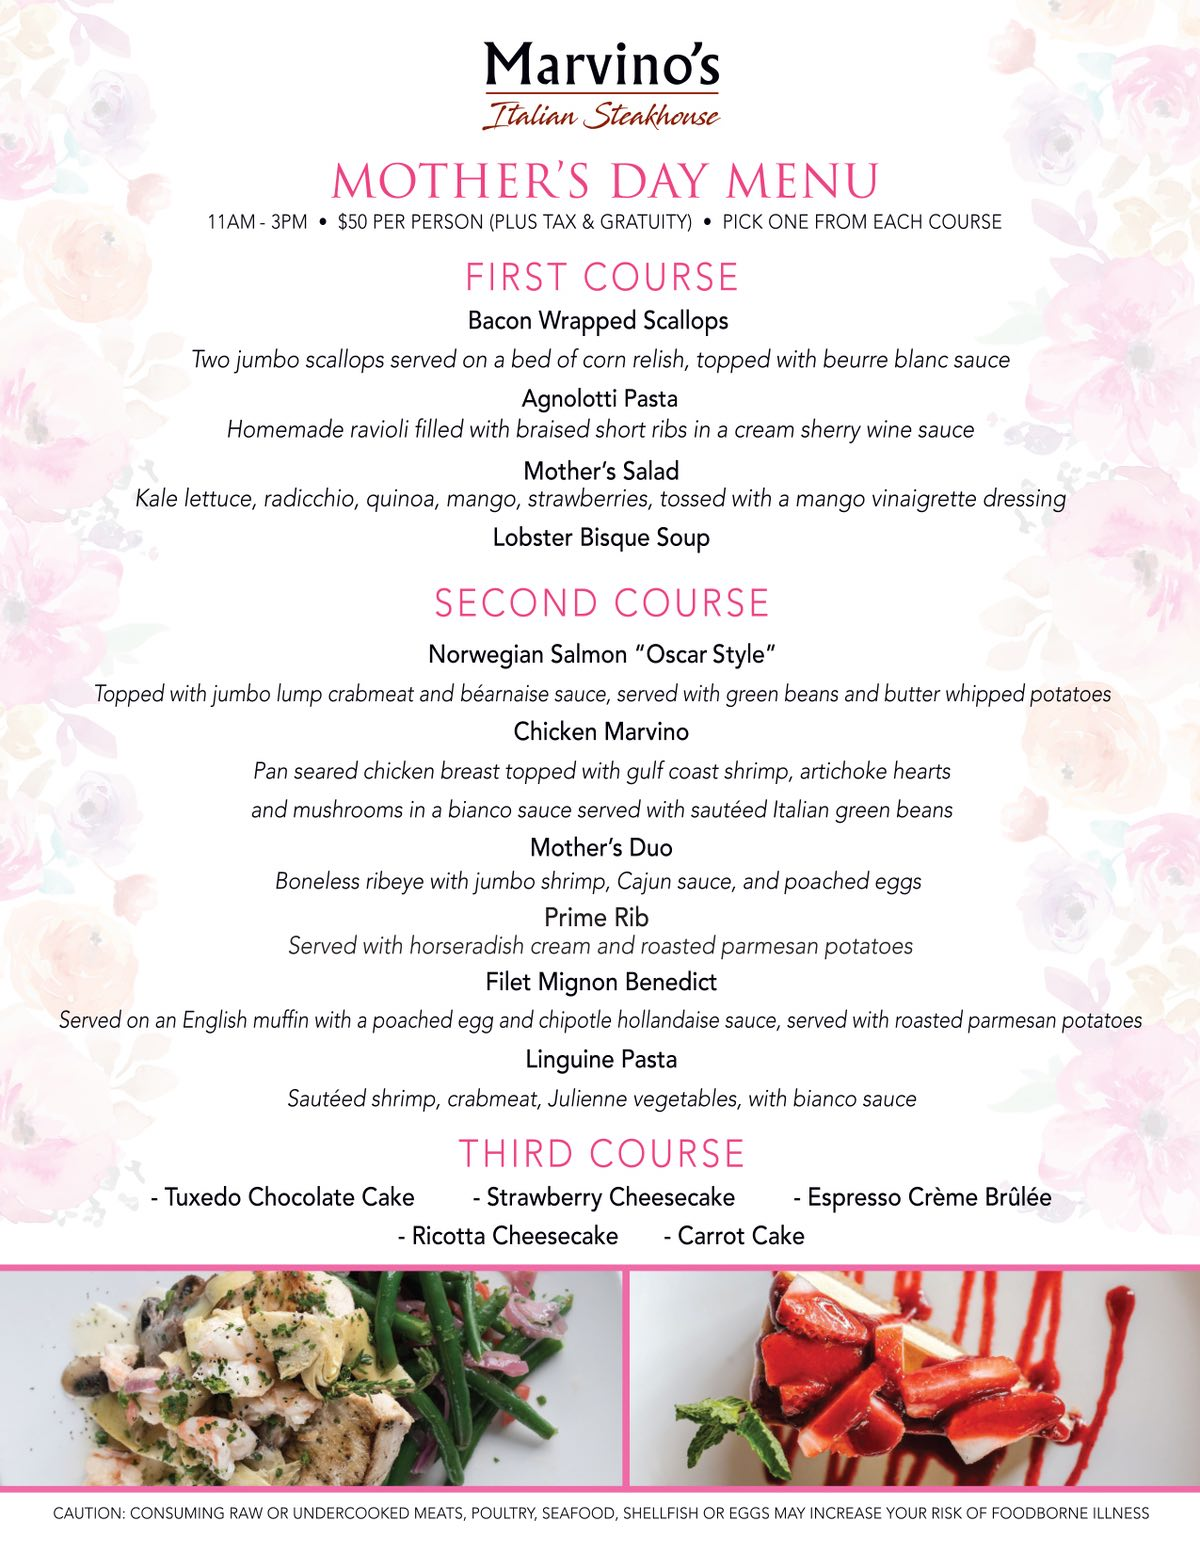 Join us at Marvino's for Mothers Day